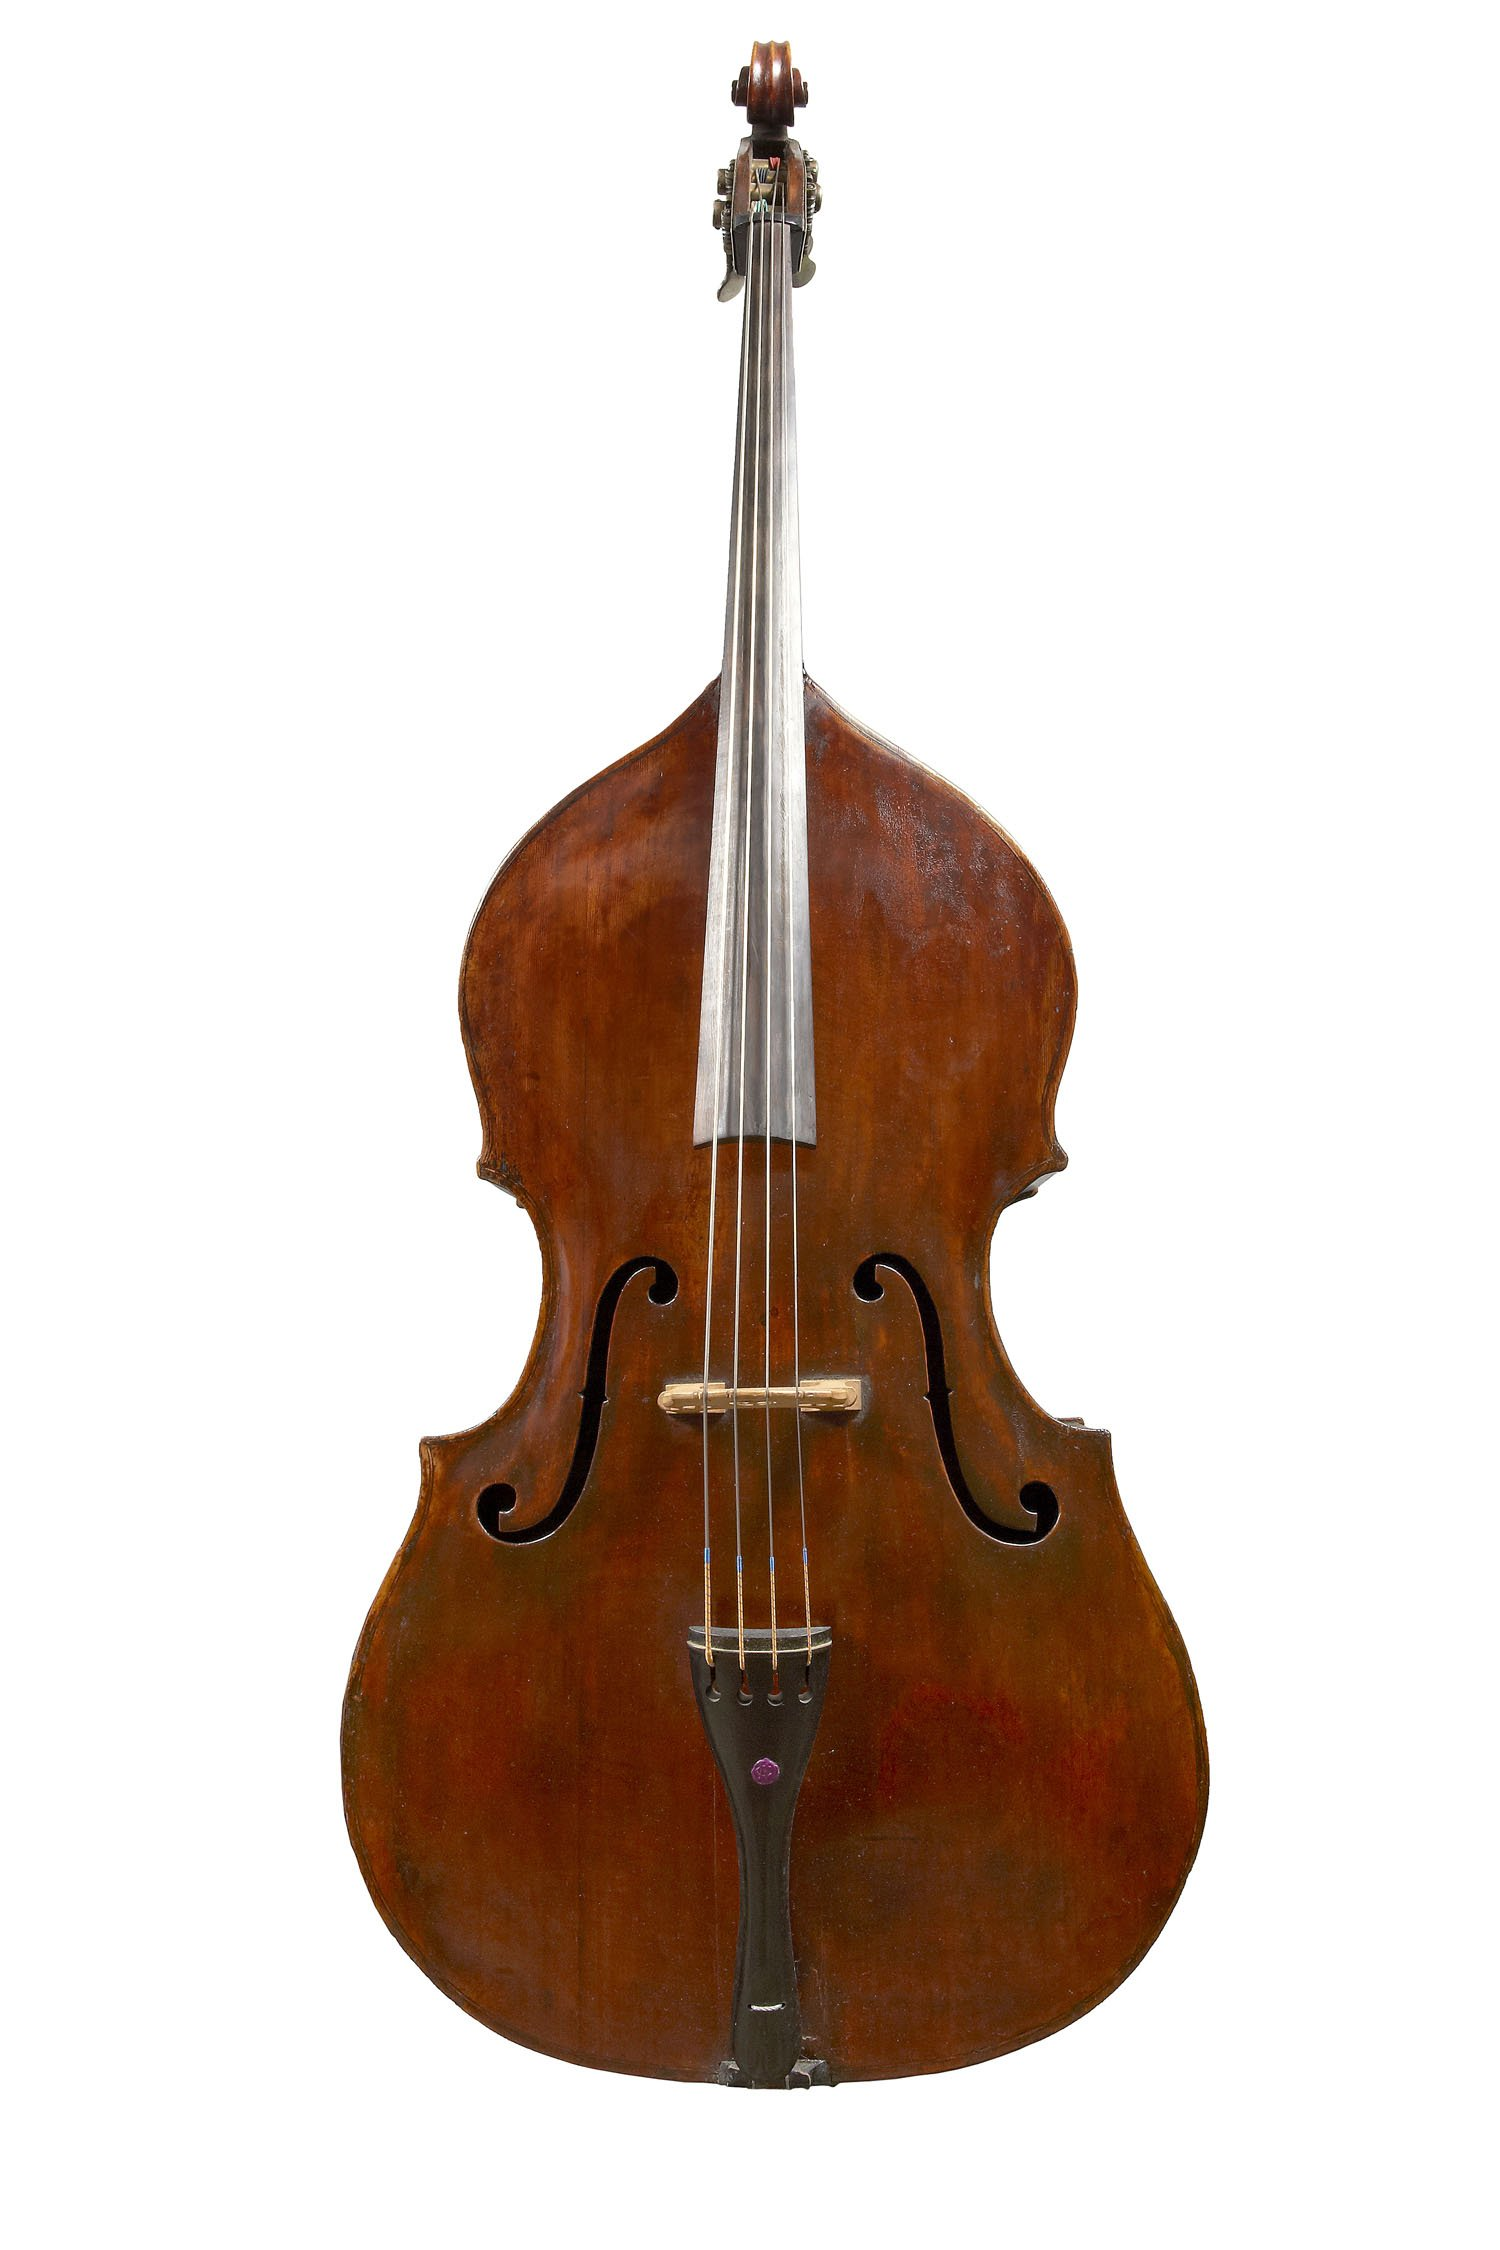 Lot 175 A Fine Italian Double Bass Venice First Half Of